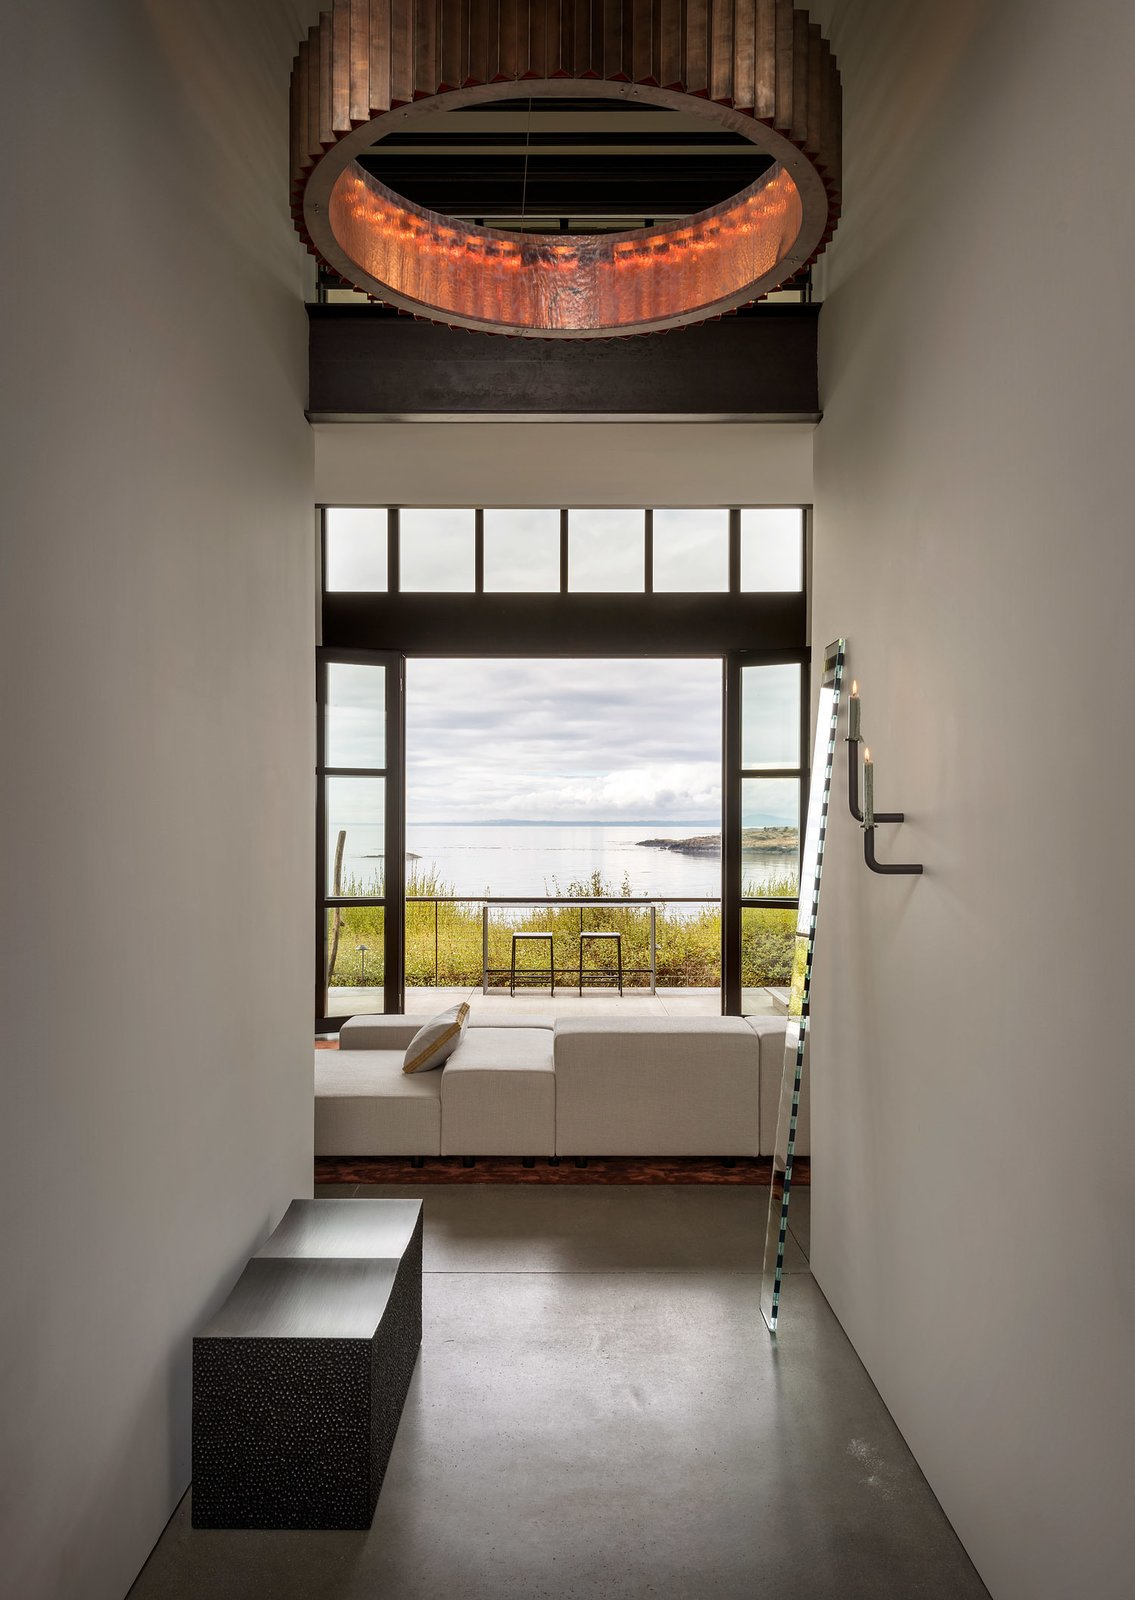 """Hallway and Concrete Floor Upon entry, John Eric Beyer's iconic block bench in blackened maple is revealed, adorned by a mirror piece, """"Seeing Glass"""", by artist Sabine Marcelis. And beyond, large openings display astounding views of the surroundings.   My Photos from False Bay Home and Writer's Cabin"""